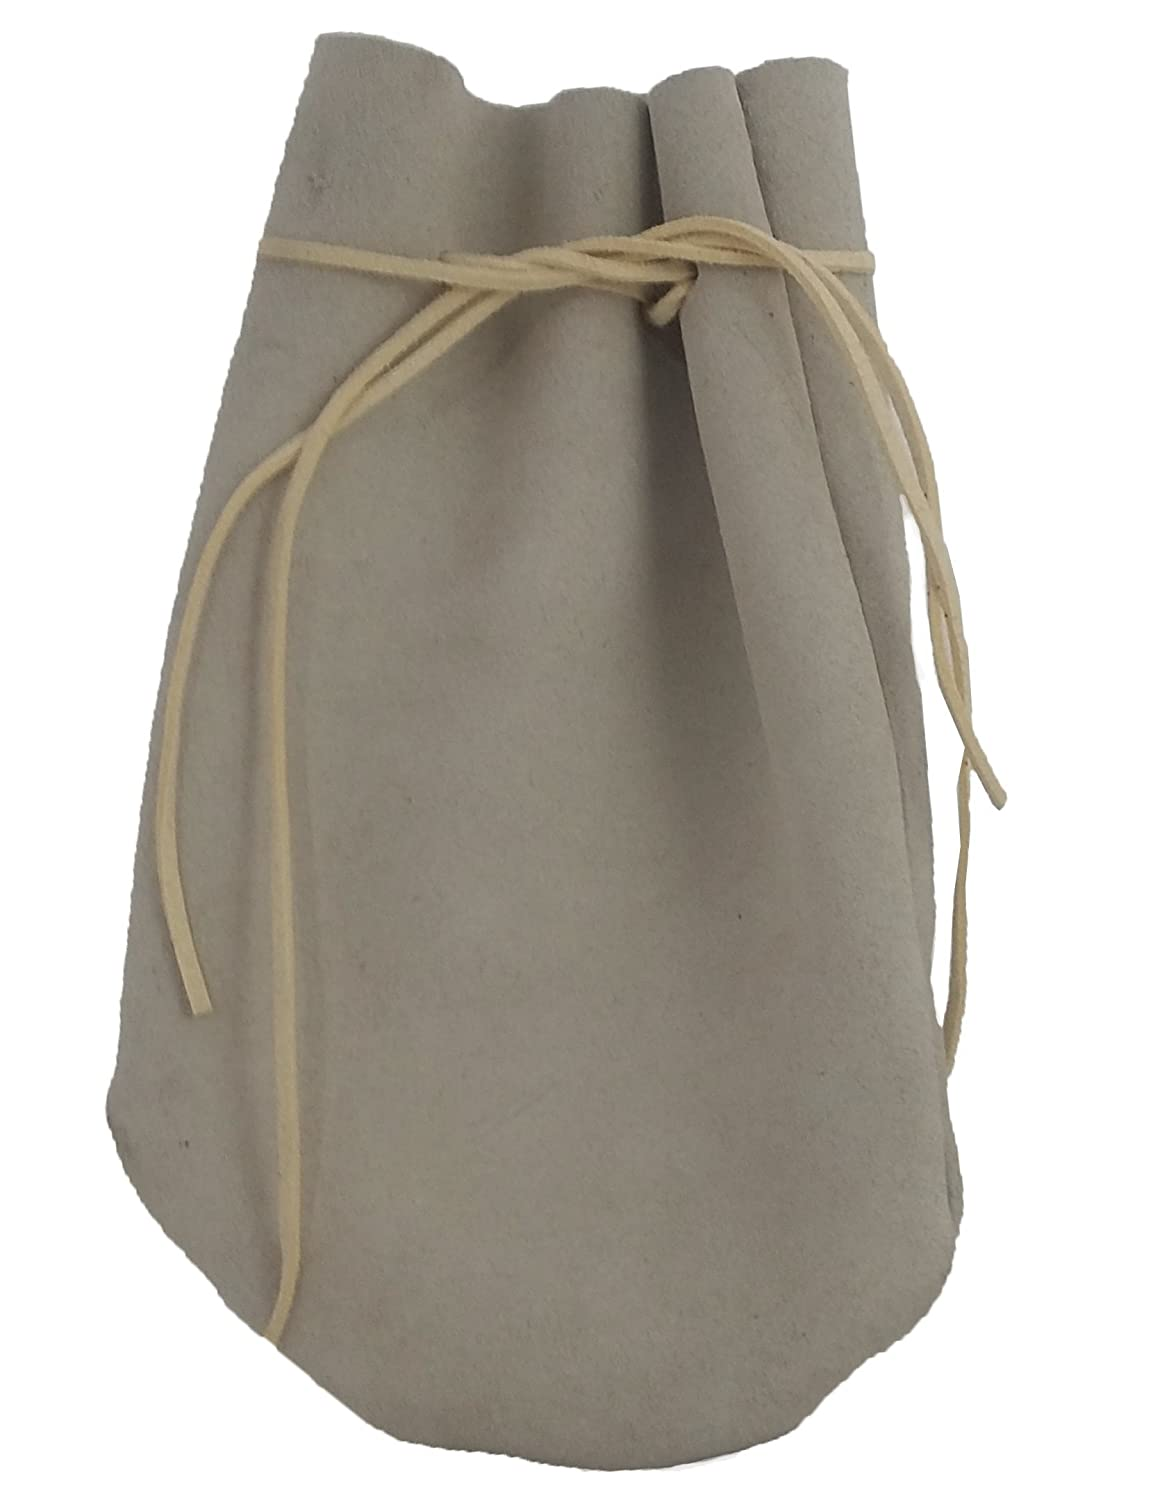 Pouch Drawstring Suede Leather 5 X 7.5 Inches, Natural